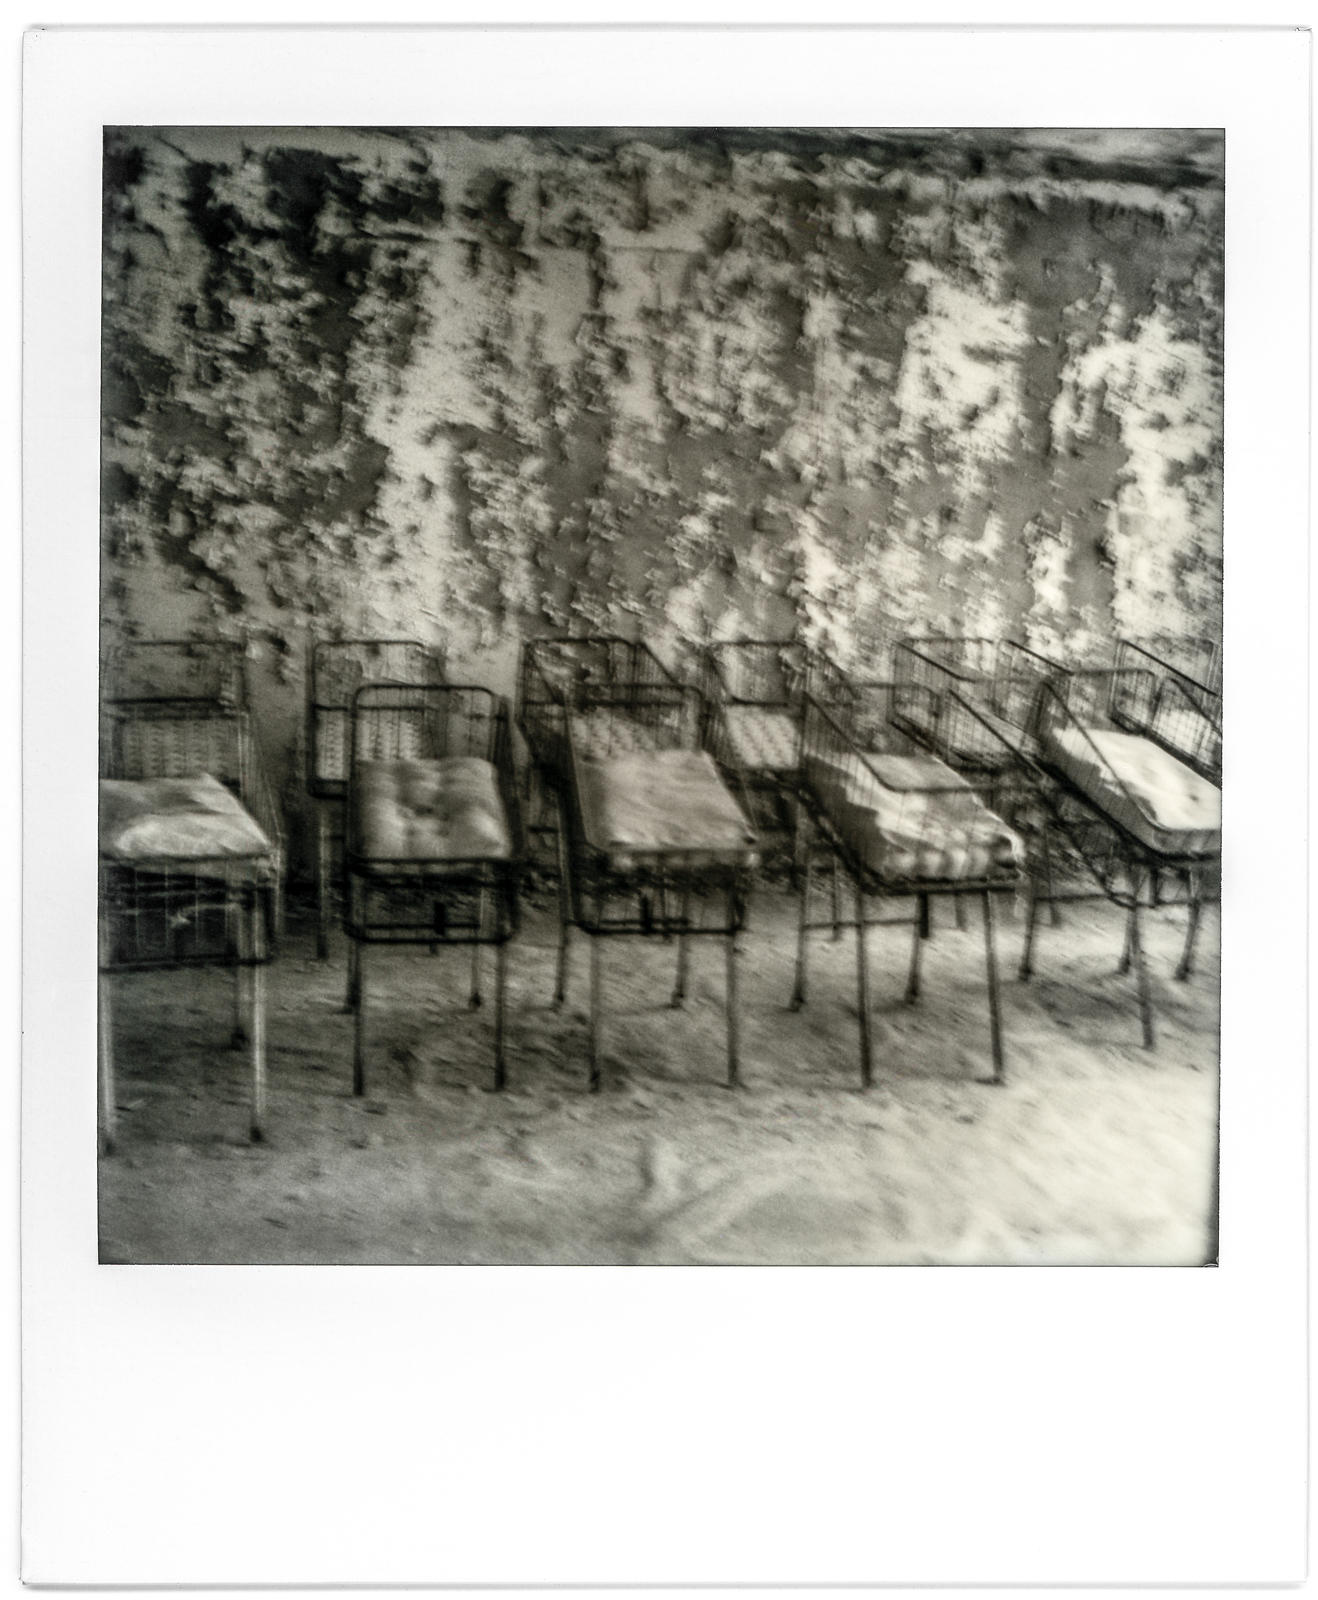 photo-polaroid-tchernobyl-chernobyl-5